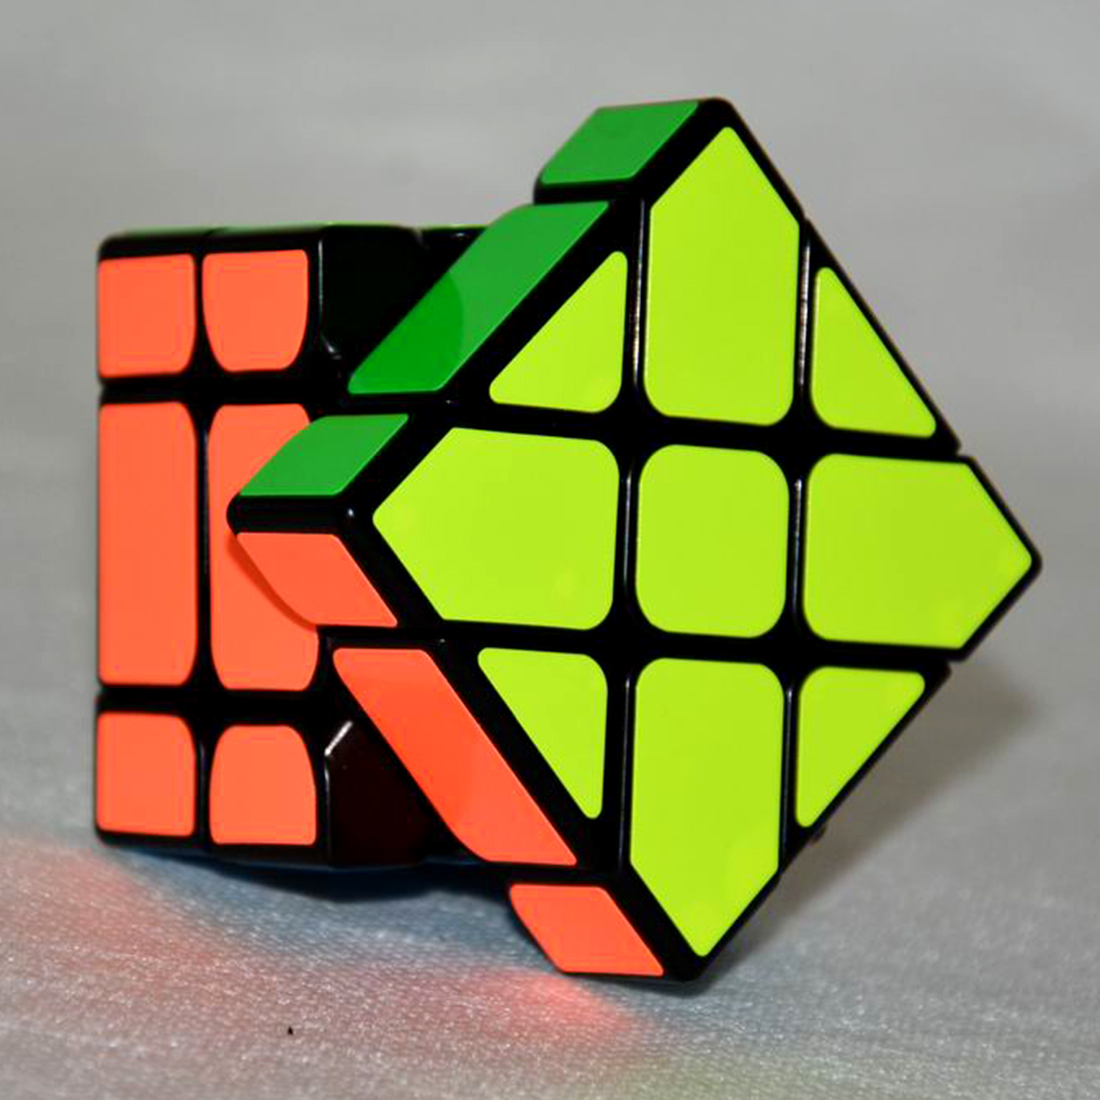 Image 4 - New Arrival YongJun YJ Speed 3X3X3 Fisher Cube Magic Cubes Speed Puzzle Learning Educational Toys For Children Kids cubo magico-in Magic Cubes from Toys & Hobbies